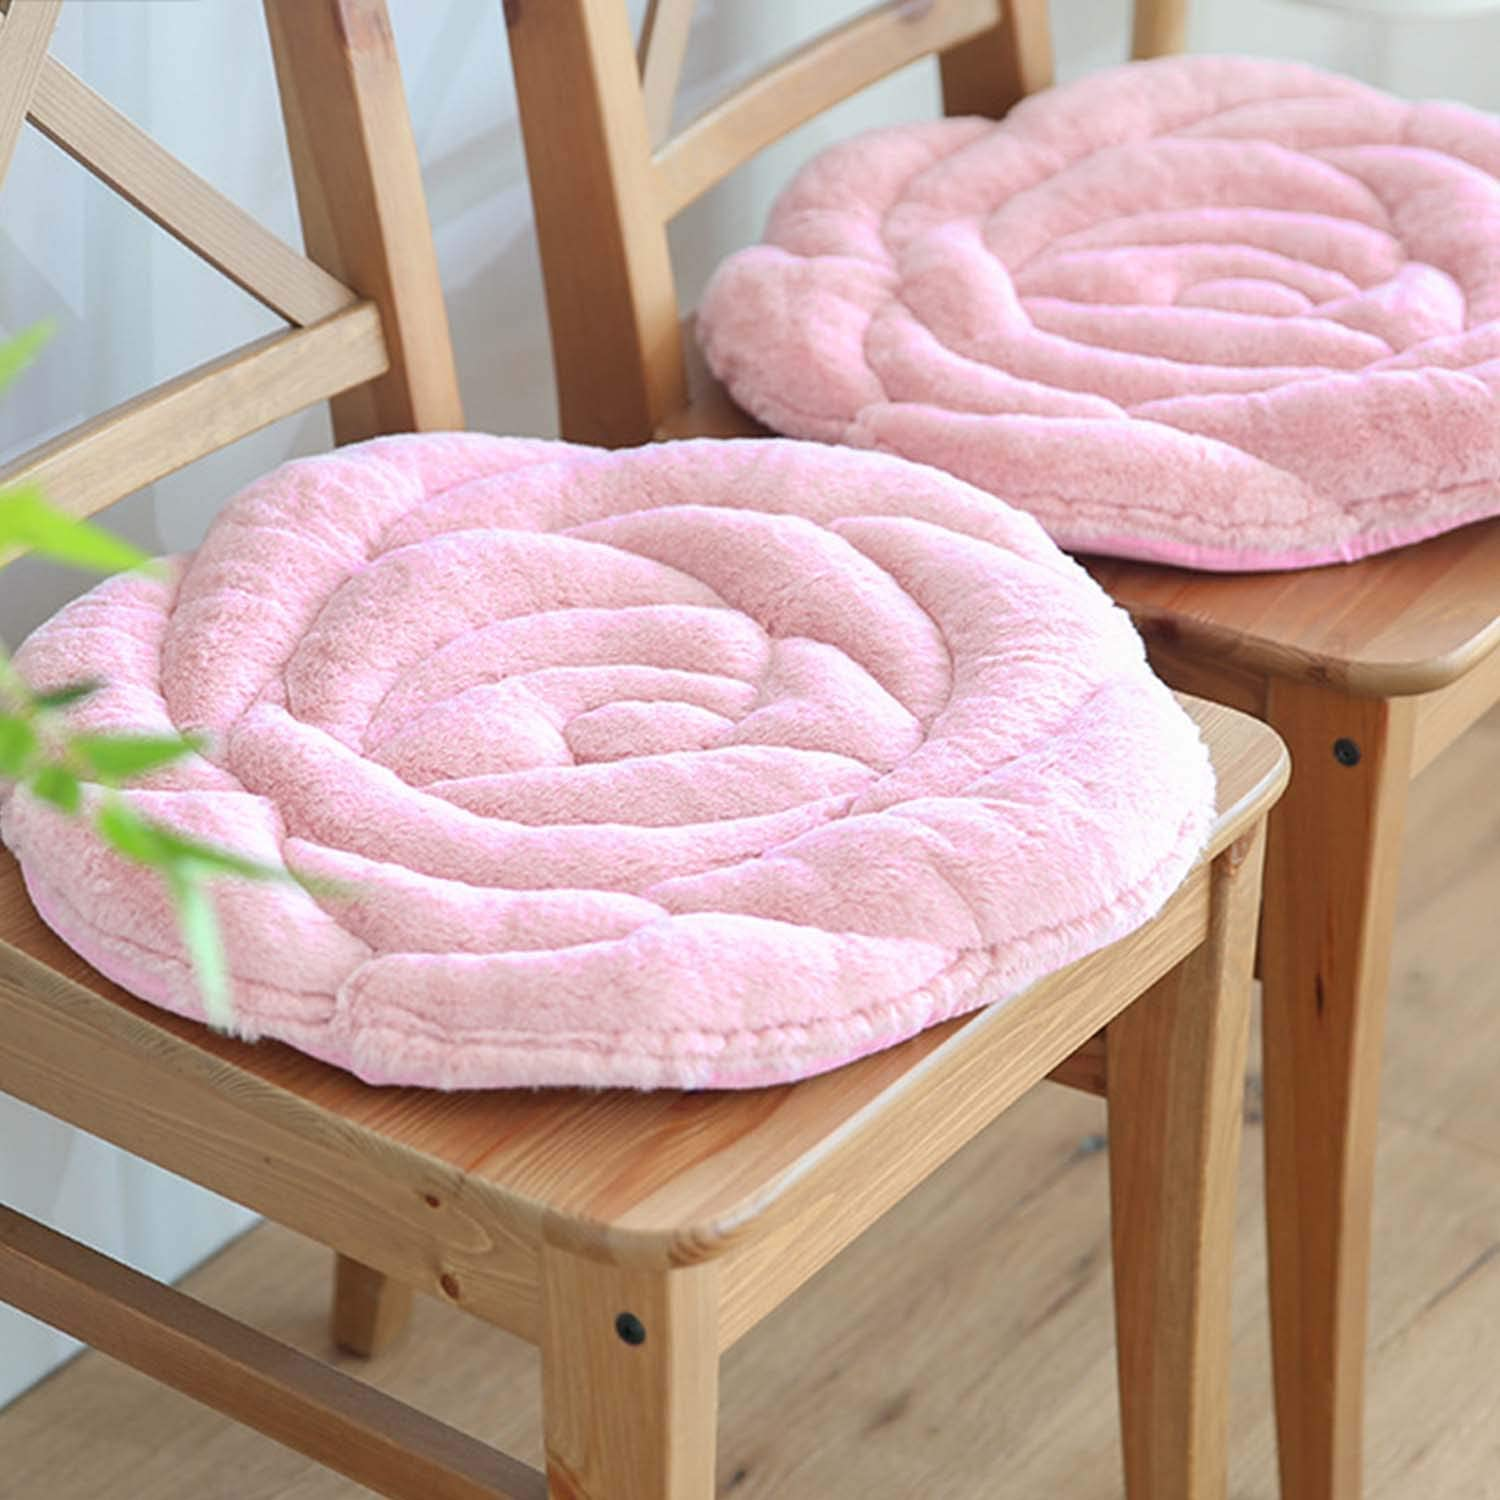 JINTN Warm Plush Seat Pad Rose Crown Shape Thick Soft Sofa Car Chair Pad Tatami Seat Cushion Winter Mat Decoration for Home Dorm Office Dining